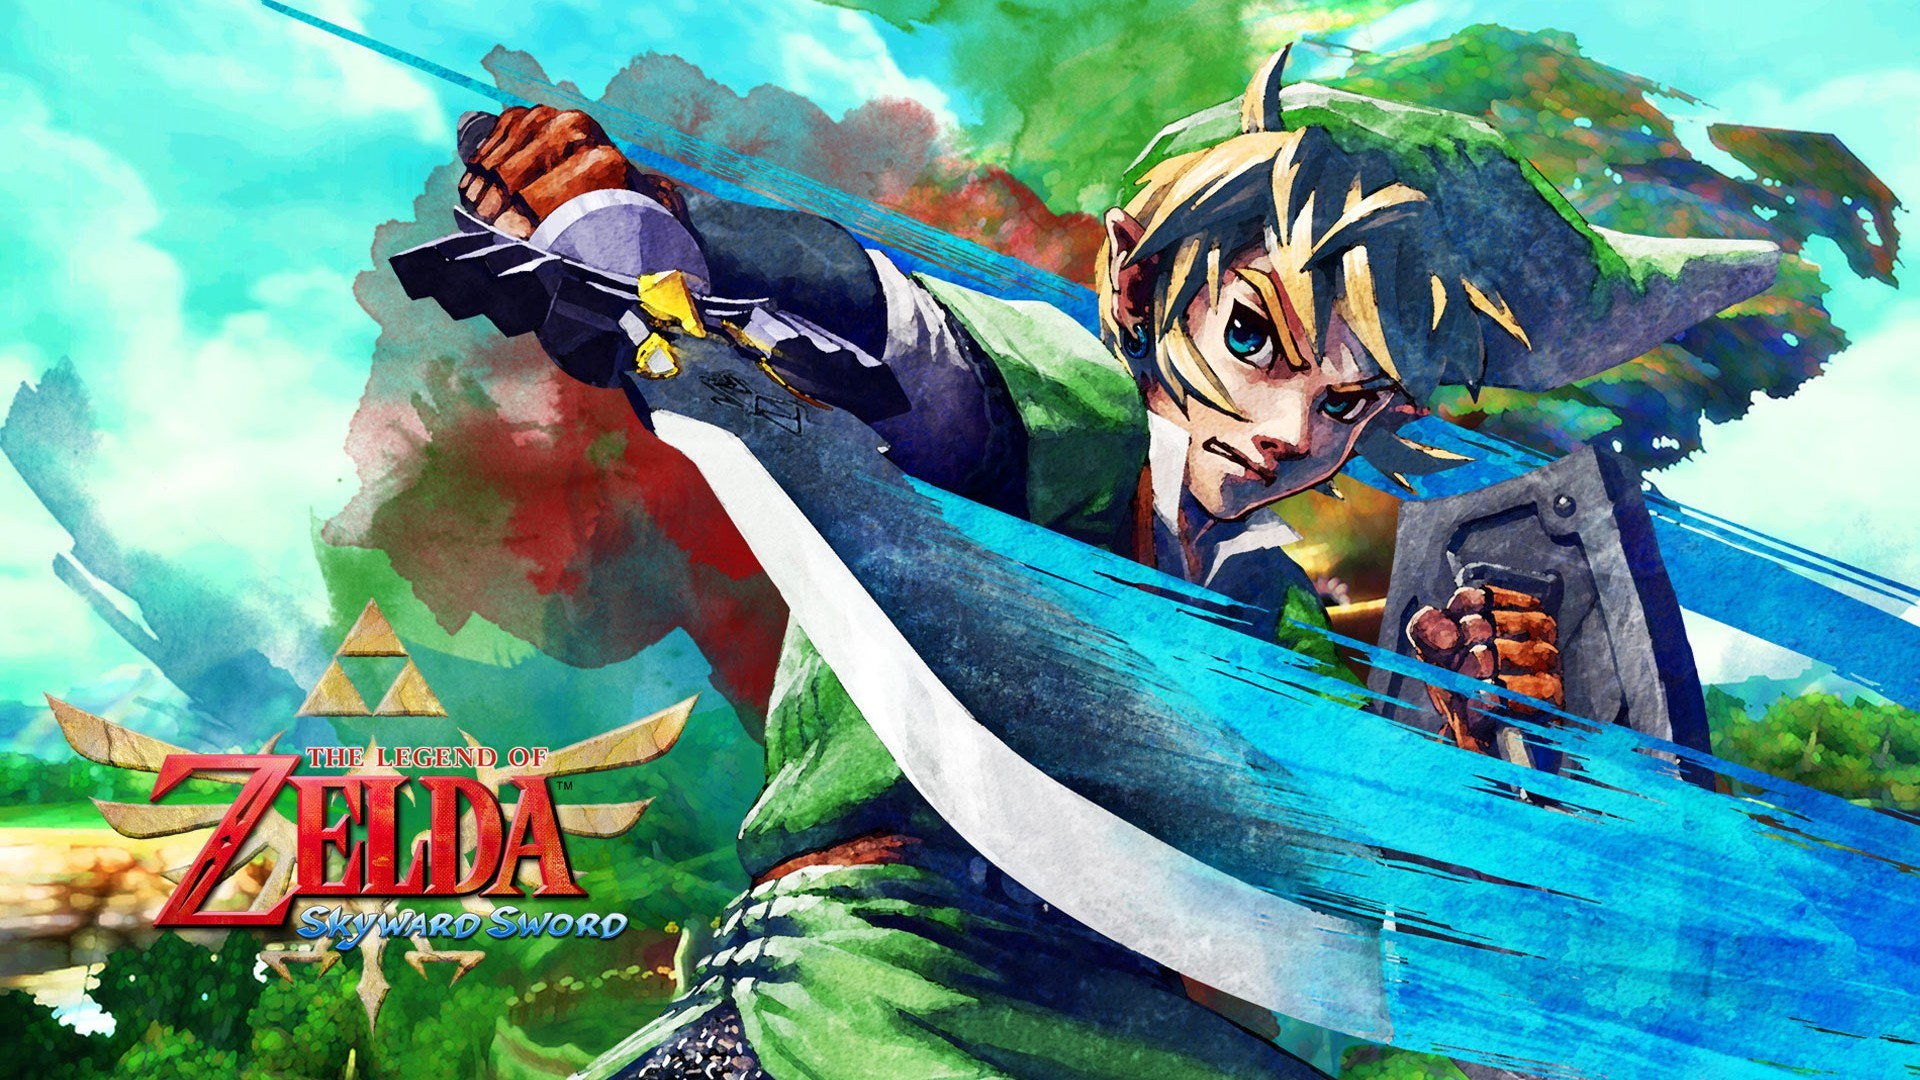 1920x1080-the-legend-of-zelda-skyward-sword-wallpaper-wpc580958